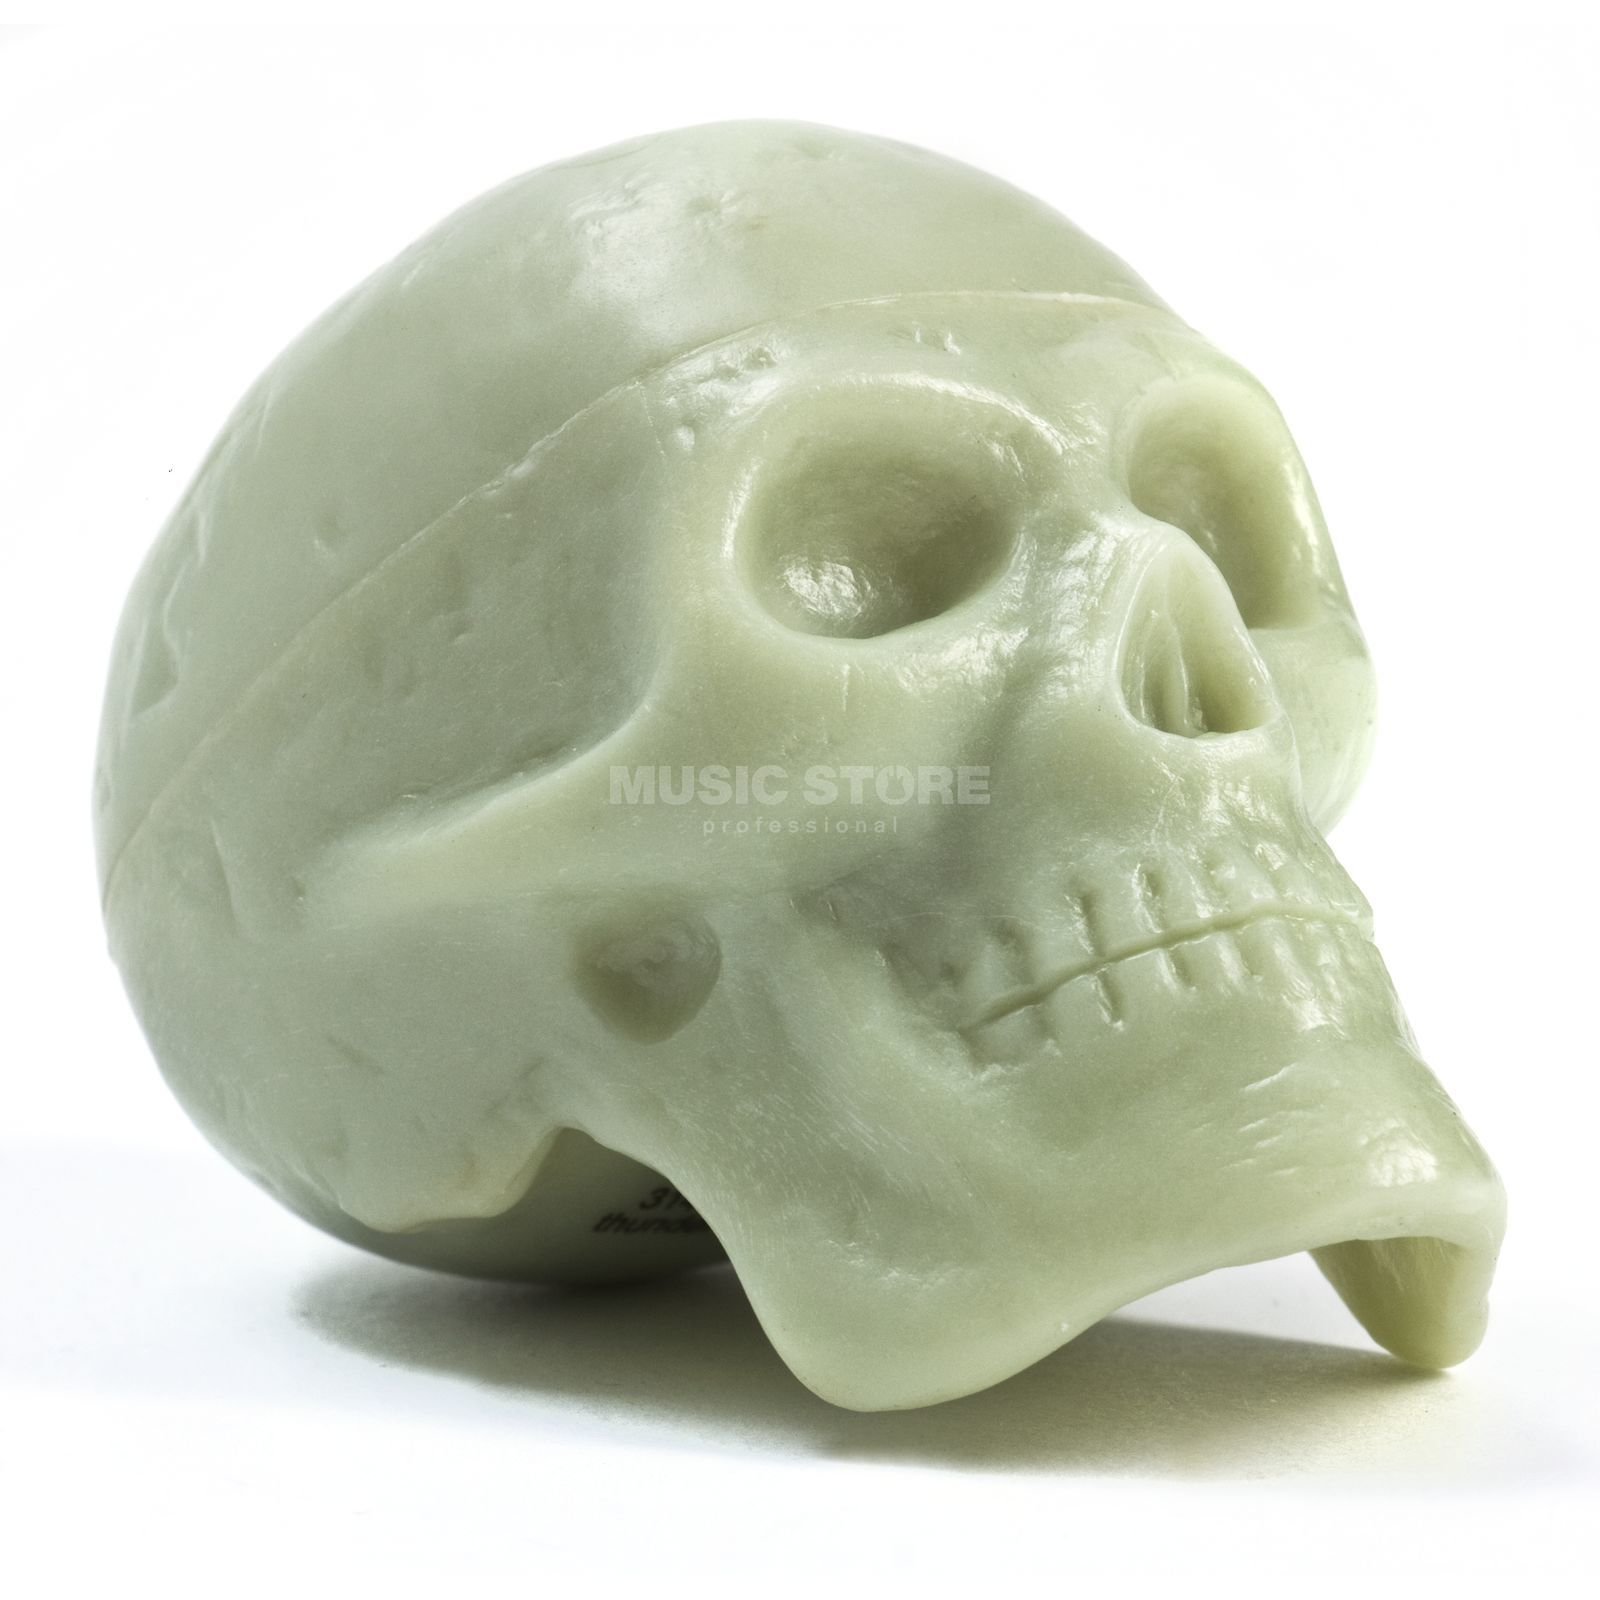 Beadbrains Skull Rhythm Shaker, Glow in the Dark Produktbillede